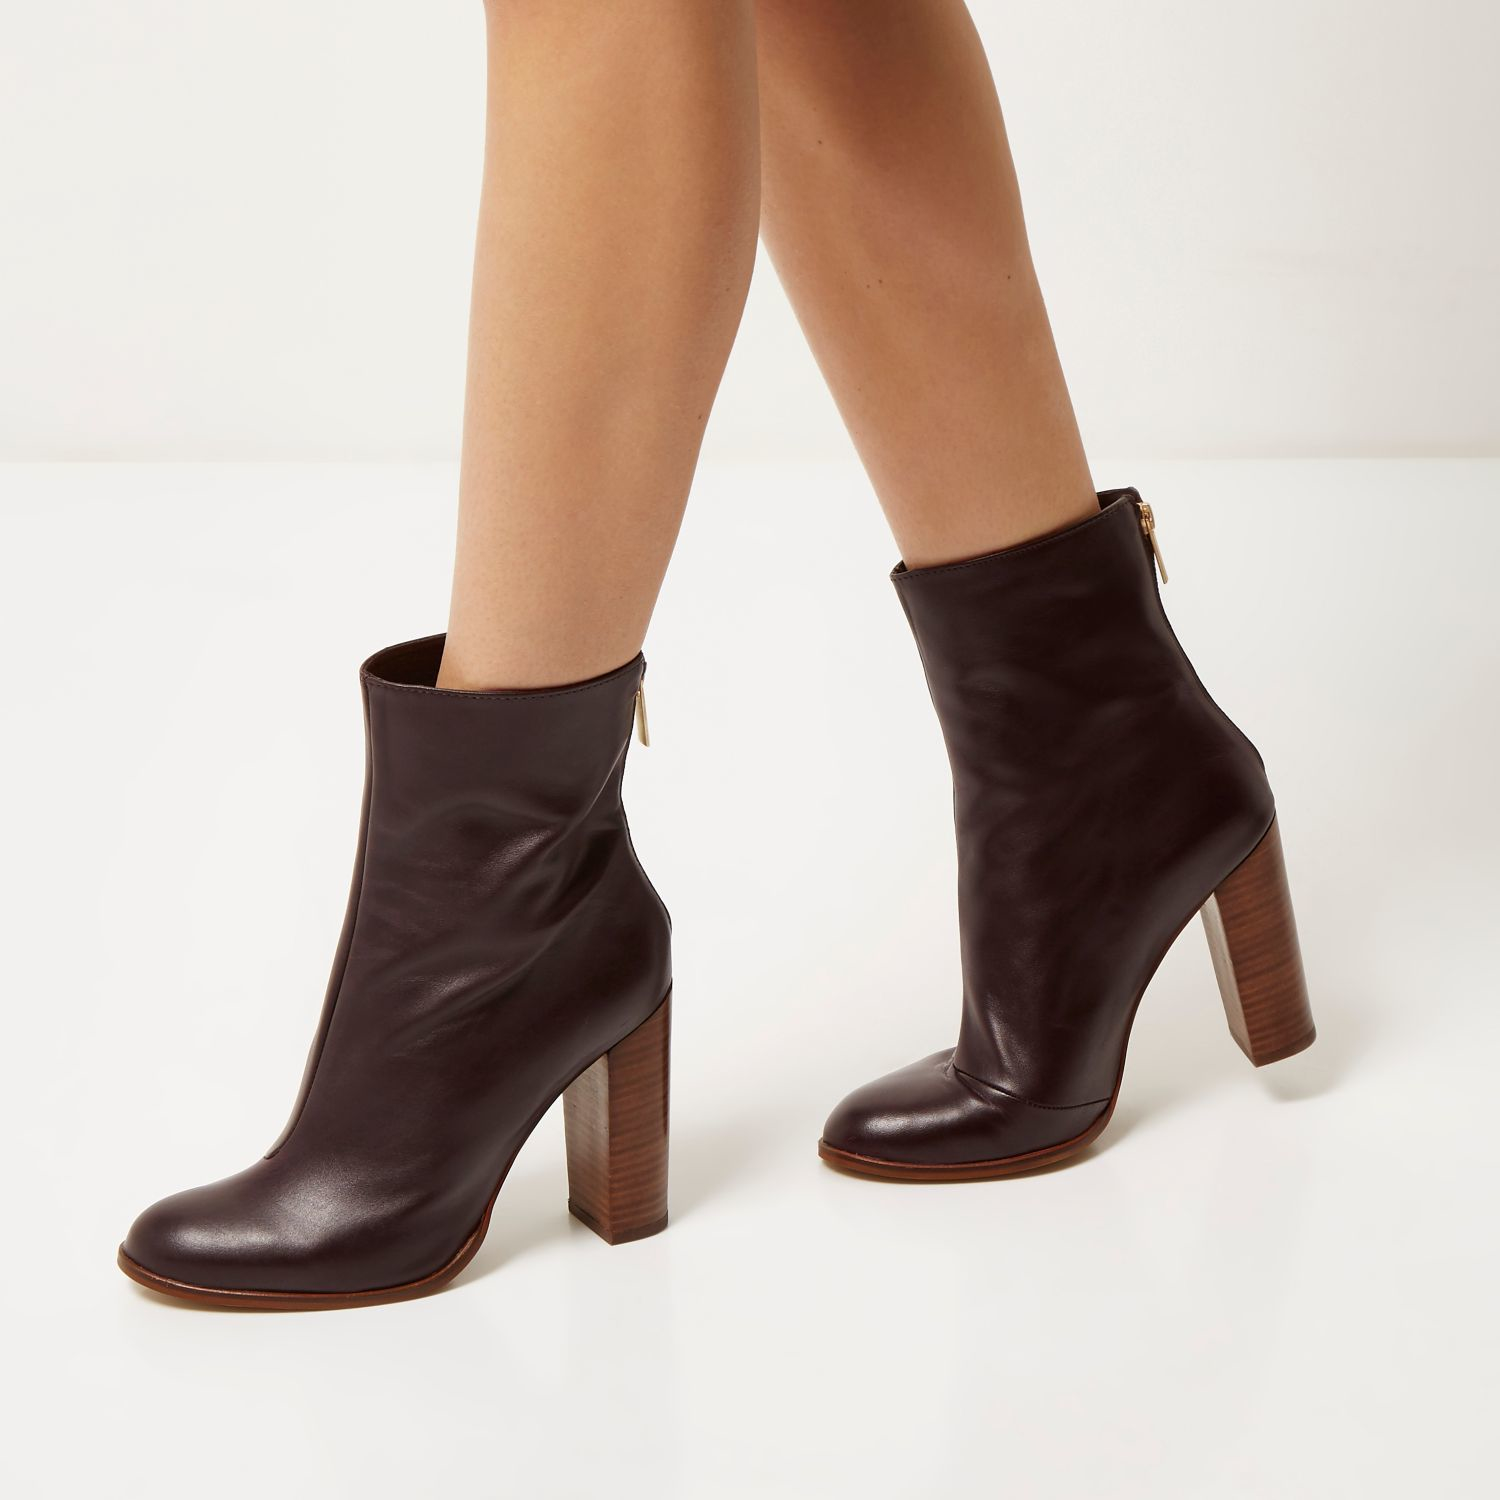 River island Dark Red Leather Heeled Ankle Boots in Red | Lyst